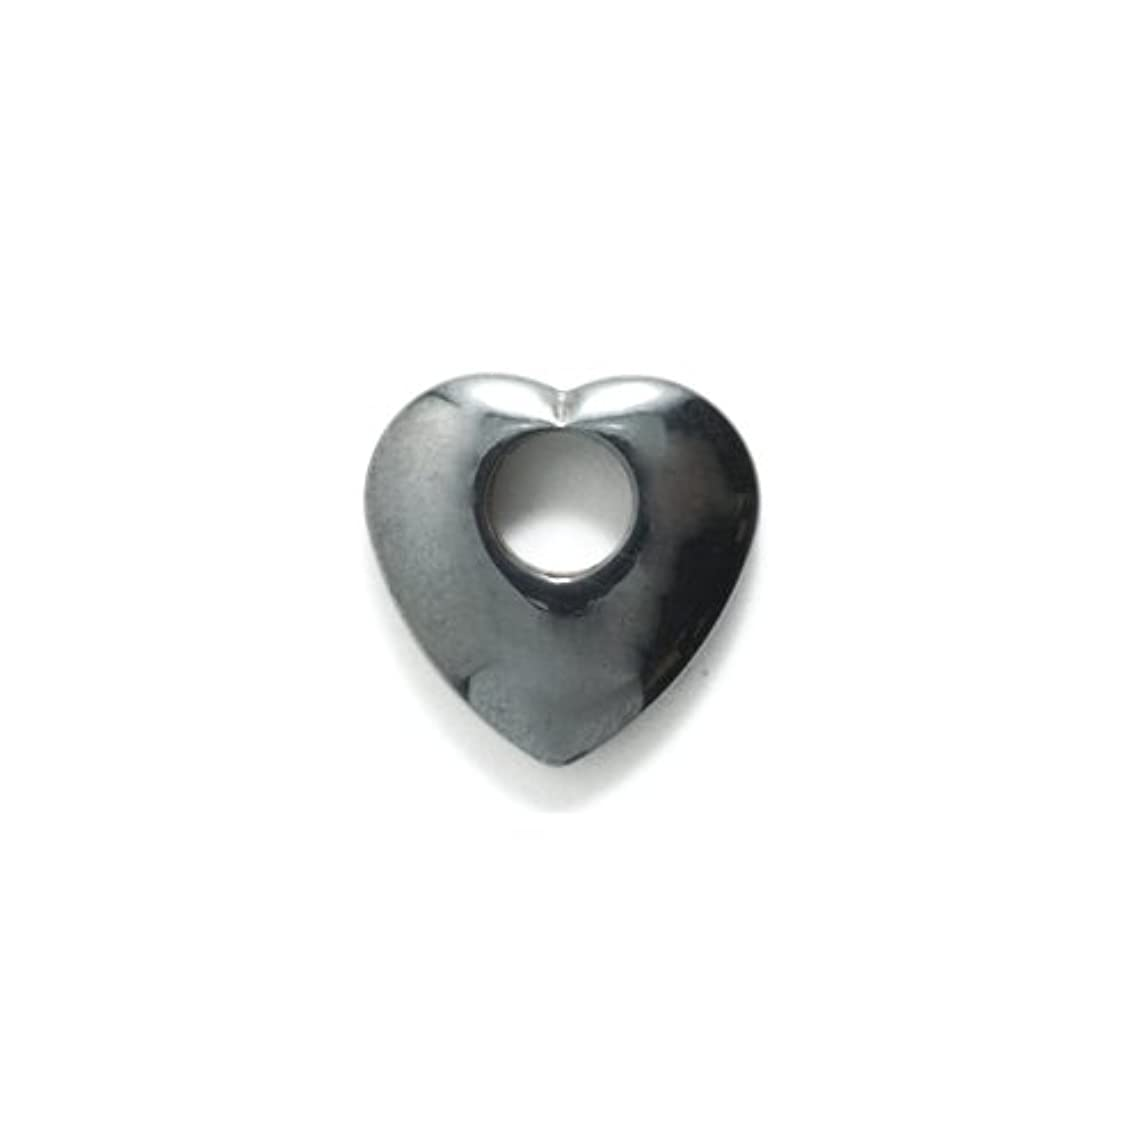 Shipwreck Beads Focal Hematite Heart with Large Hole 15-mm, 12-Pack